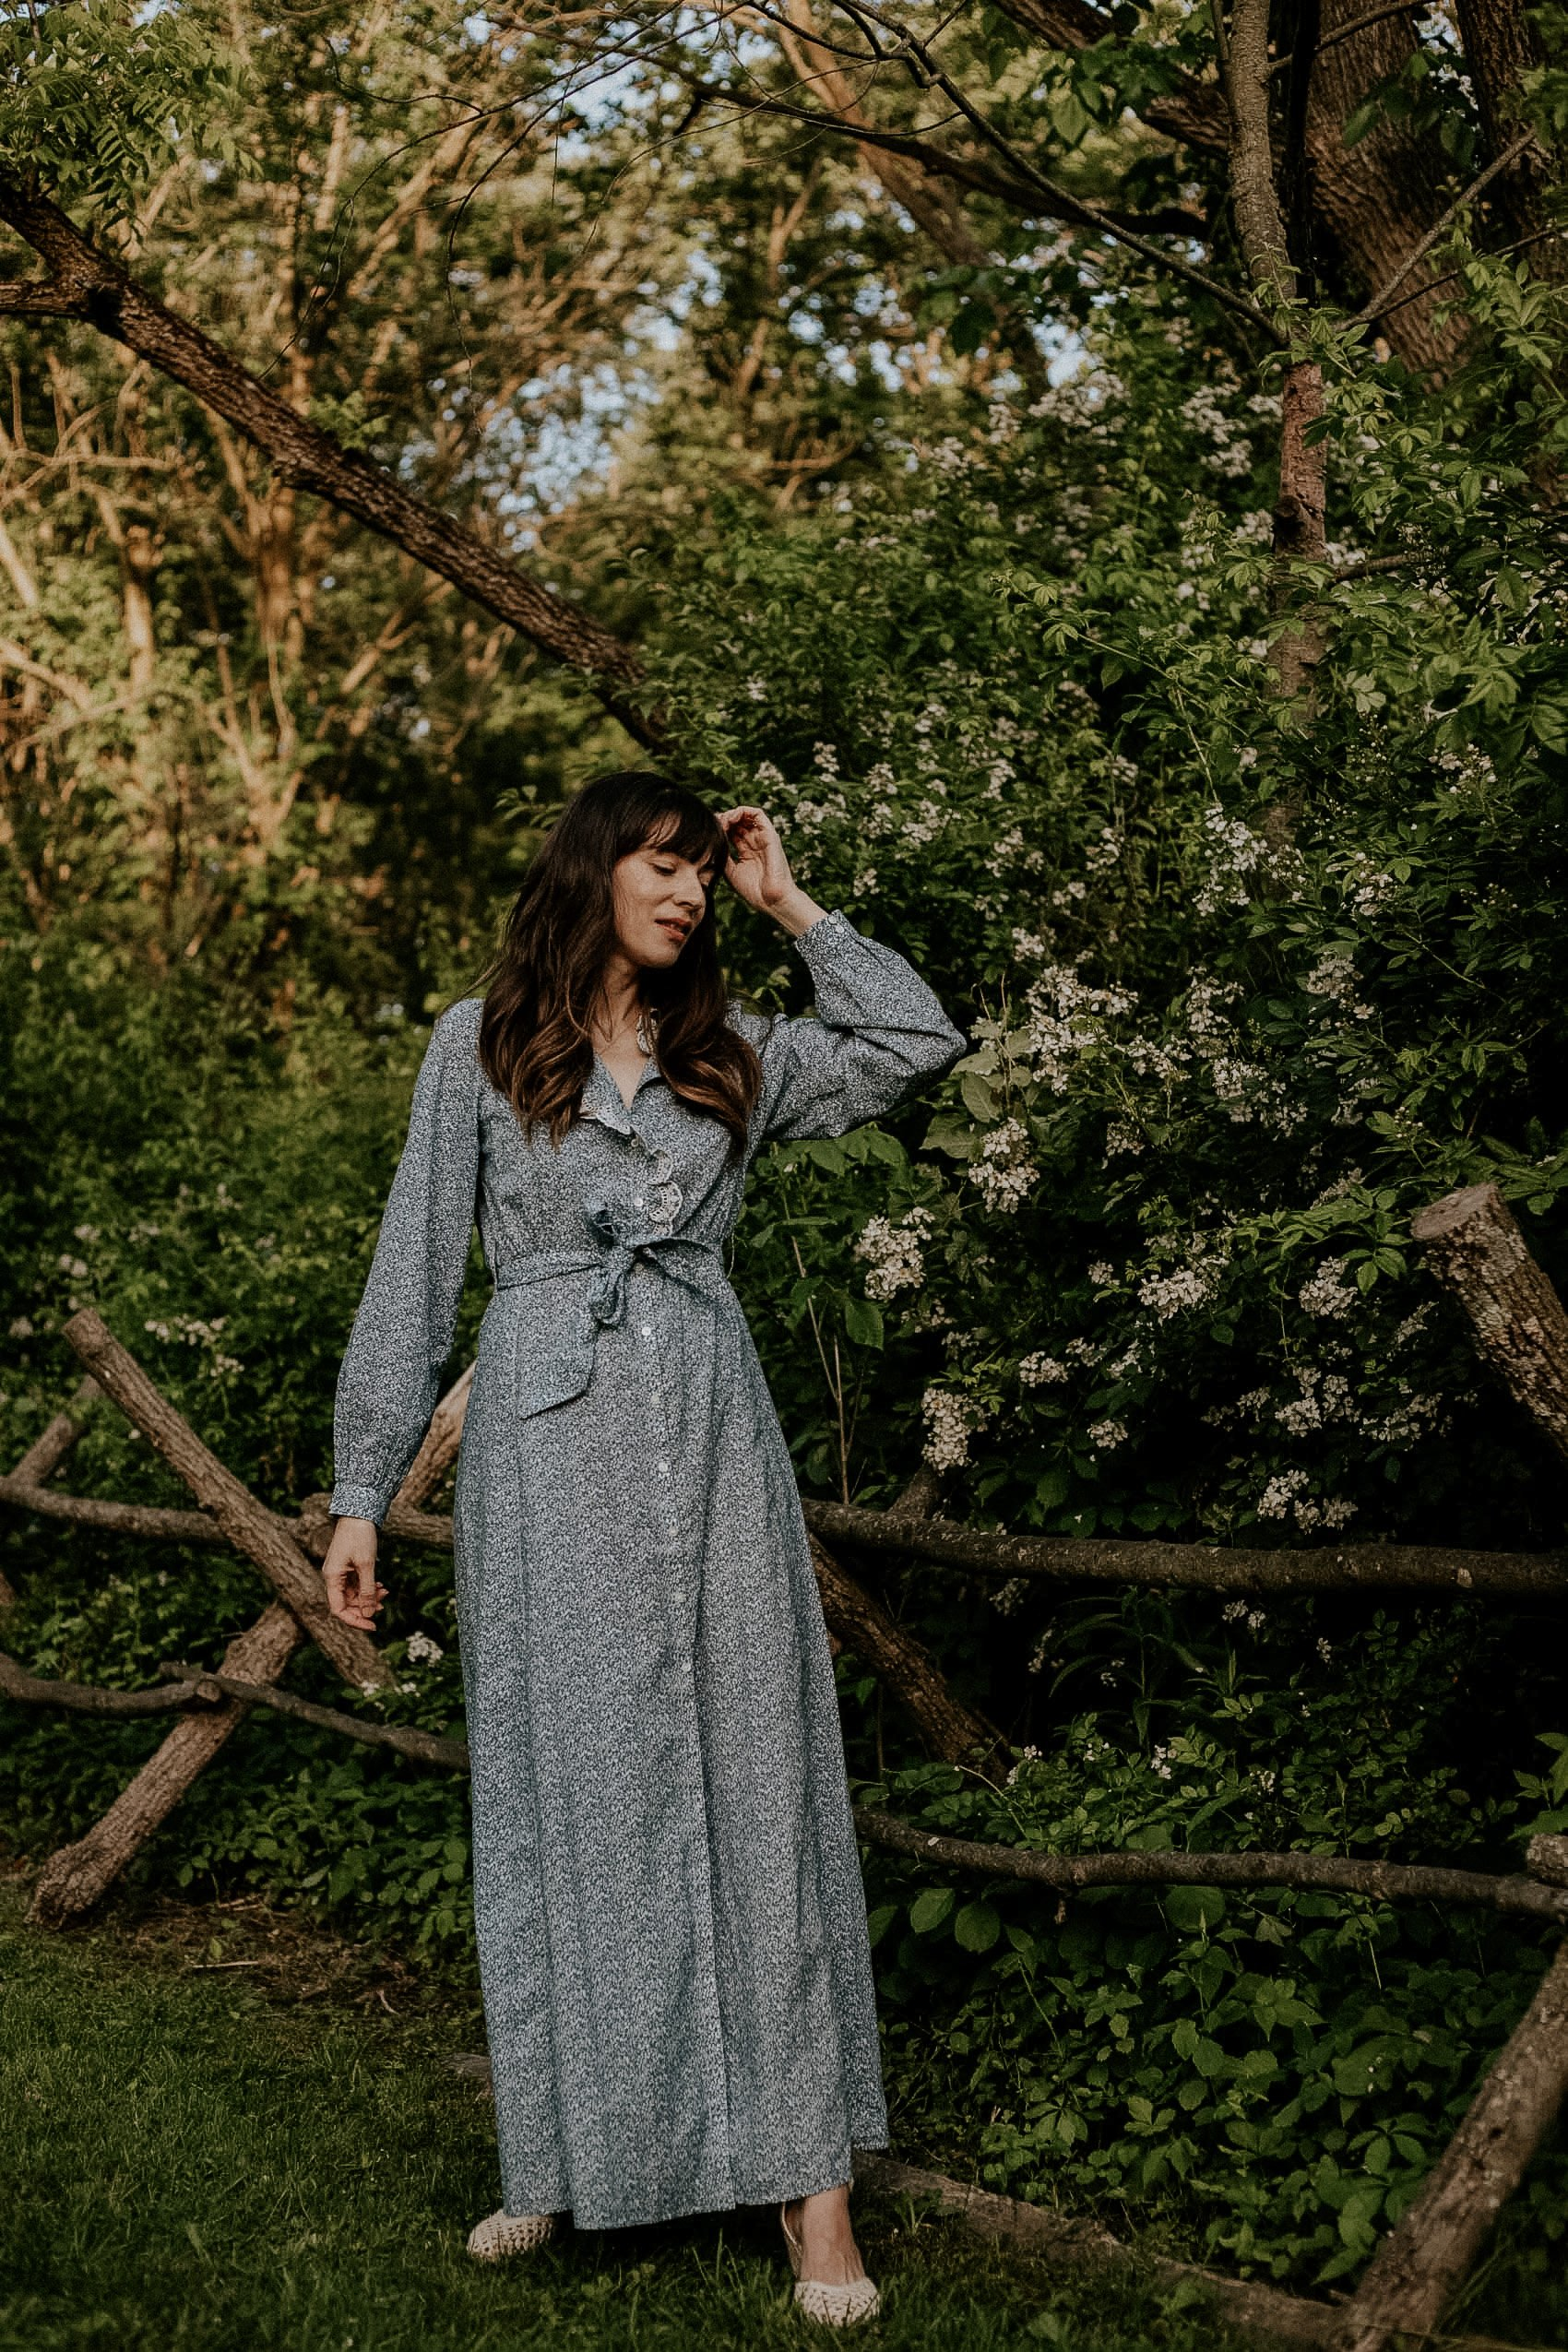 Sezane Long Blue Floral Dress with Tie Waist on Style Blogger standing in the woods